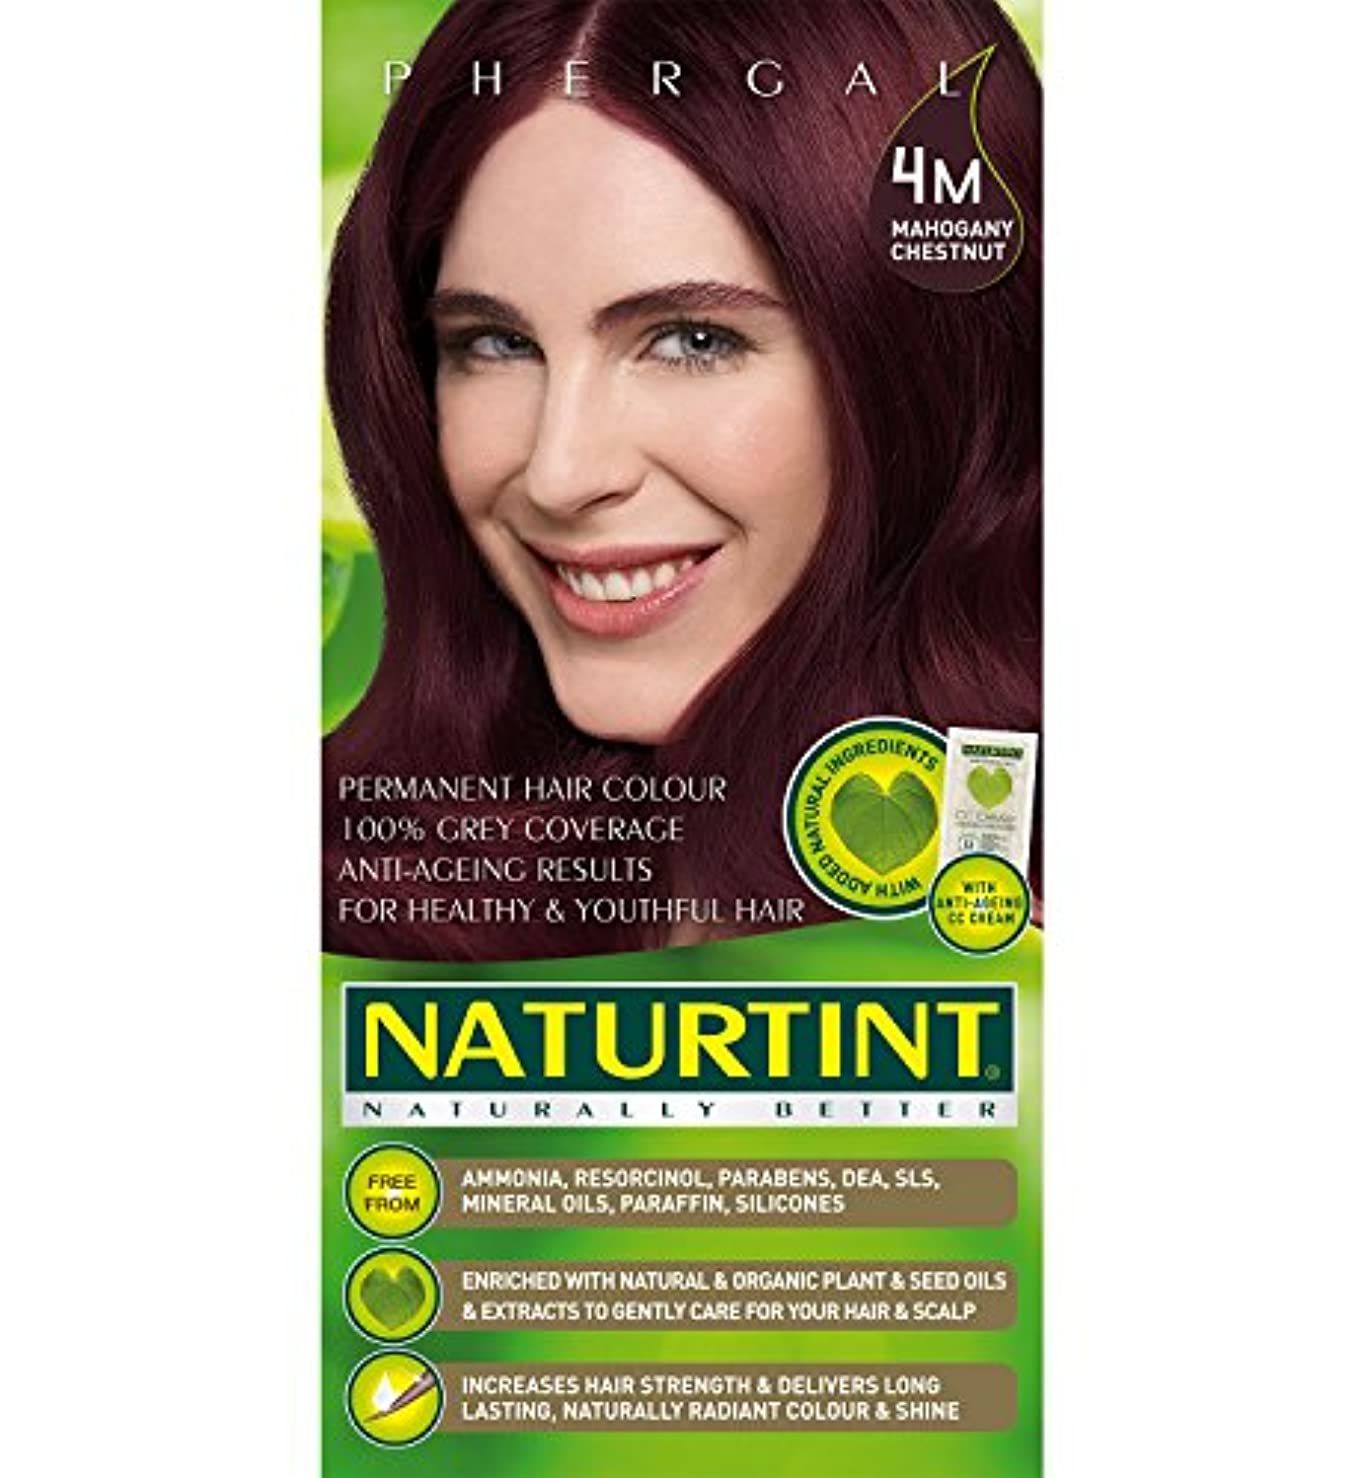 シティホイッスル滴下Naturtint Hair Color 4M Mahogany Chestnut Count (並行輸入品)